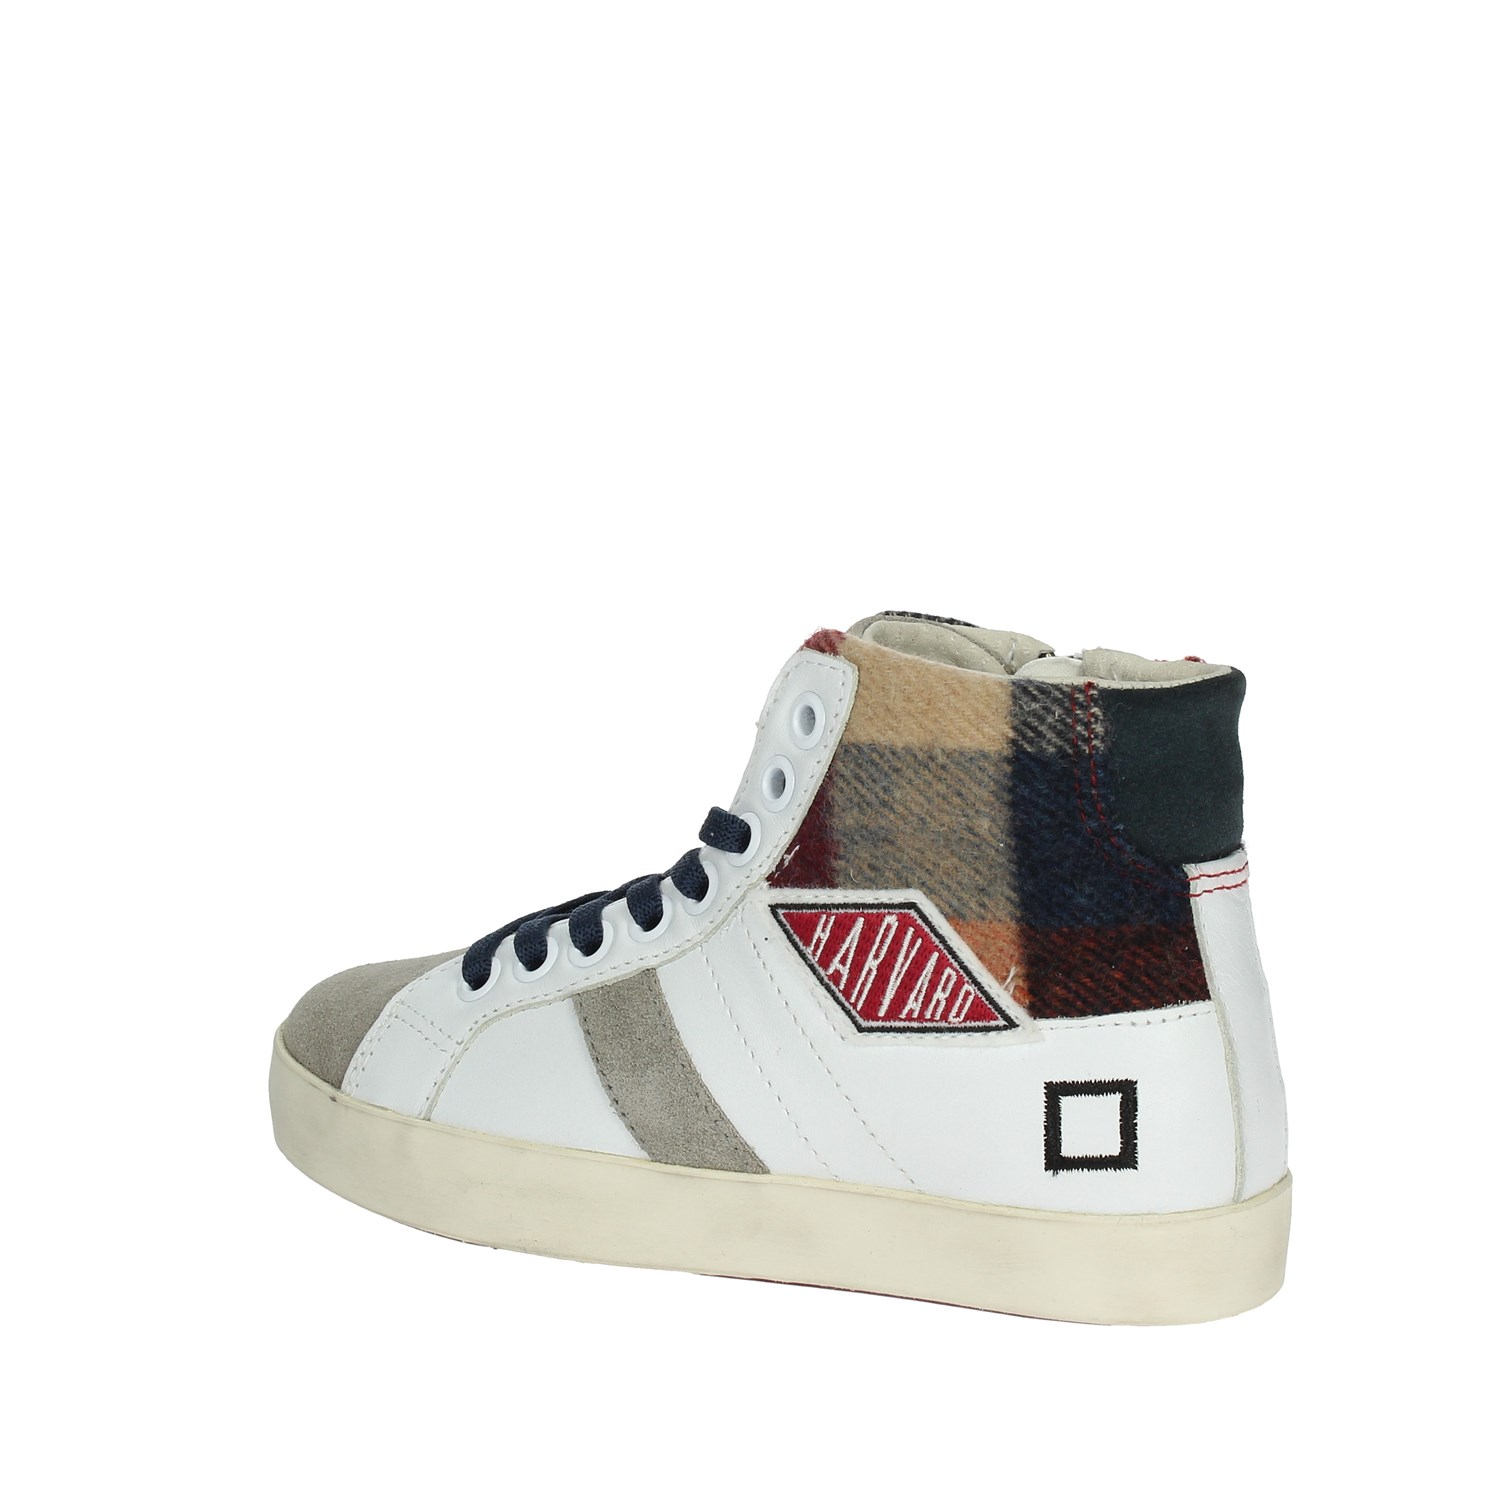 reputable site fef65 eb5aa Details about D.a.t.e. HILL HIGH 2-6B White High Sneakers Boy Fall/Winter